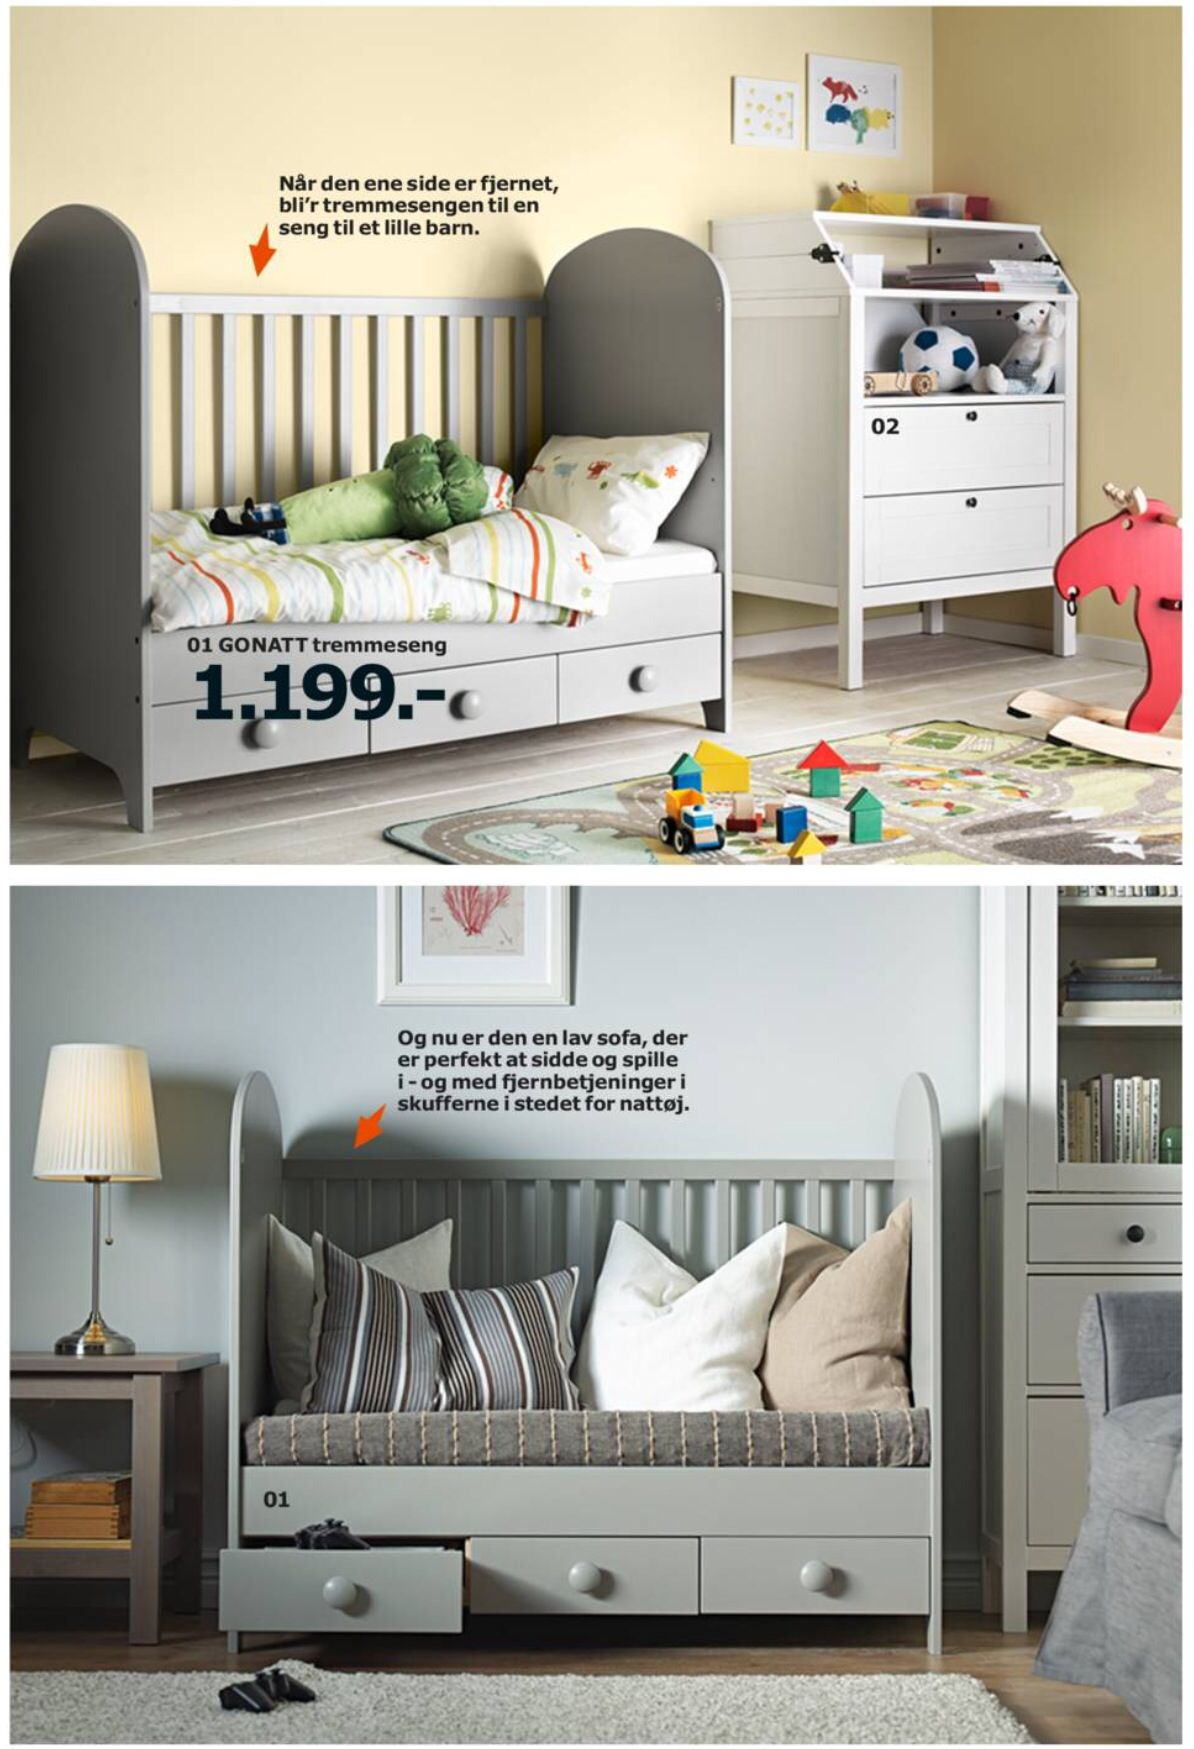 IKEA Gonatt kids bed turn into toddler bed or low couch